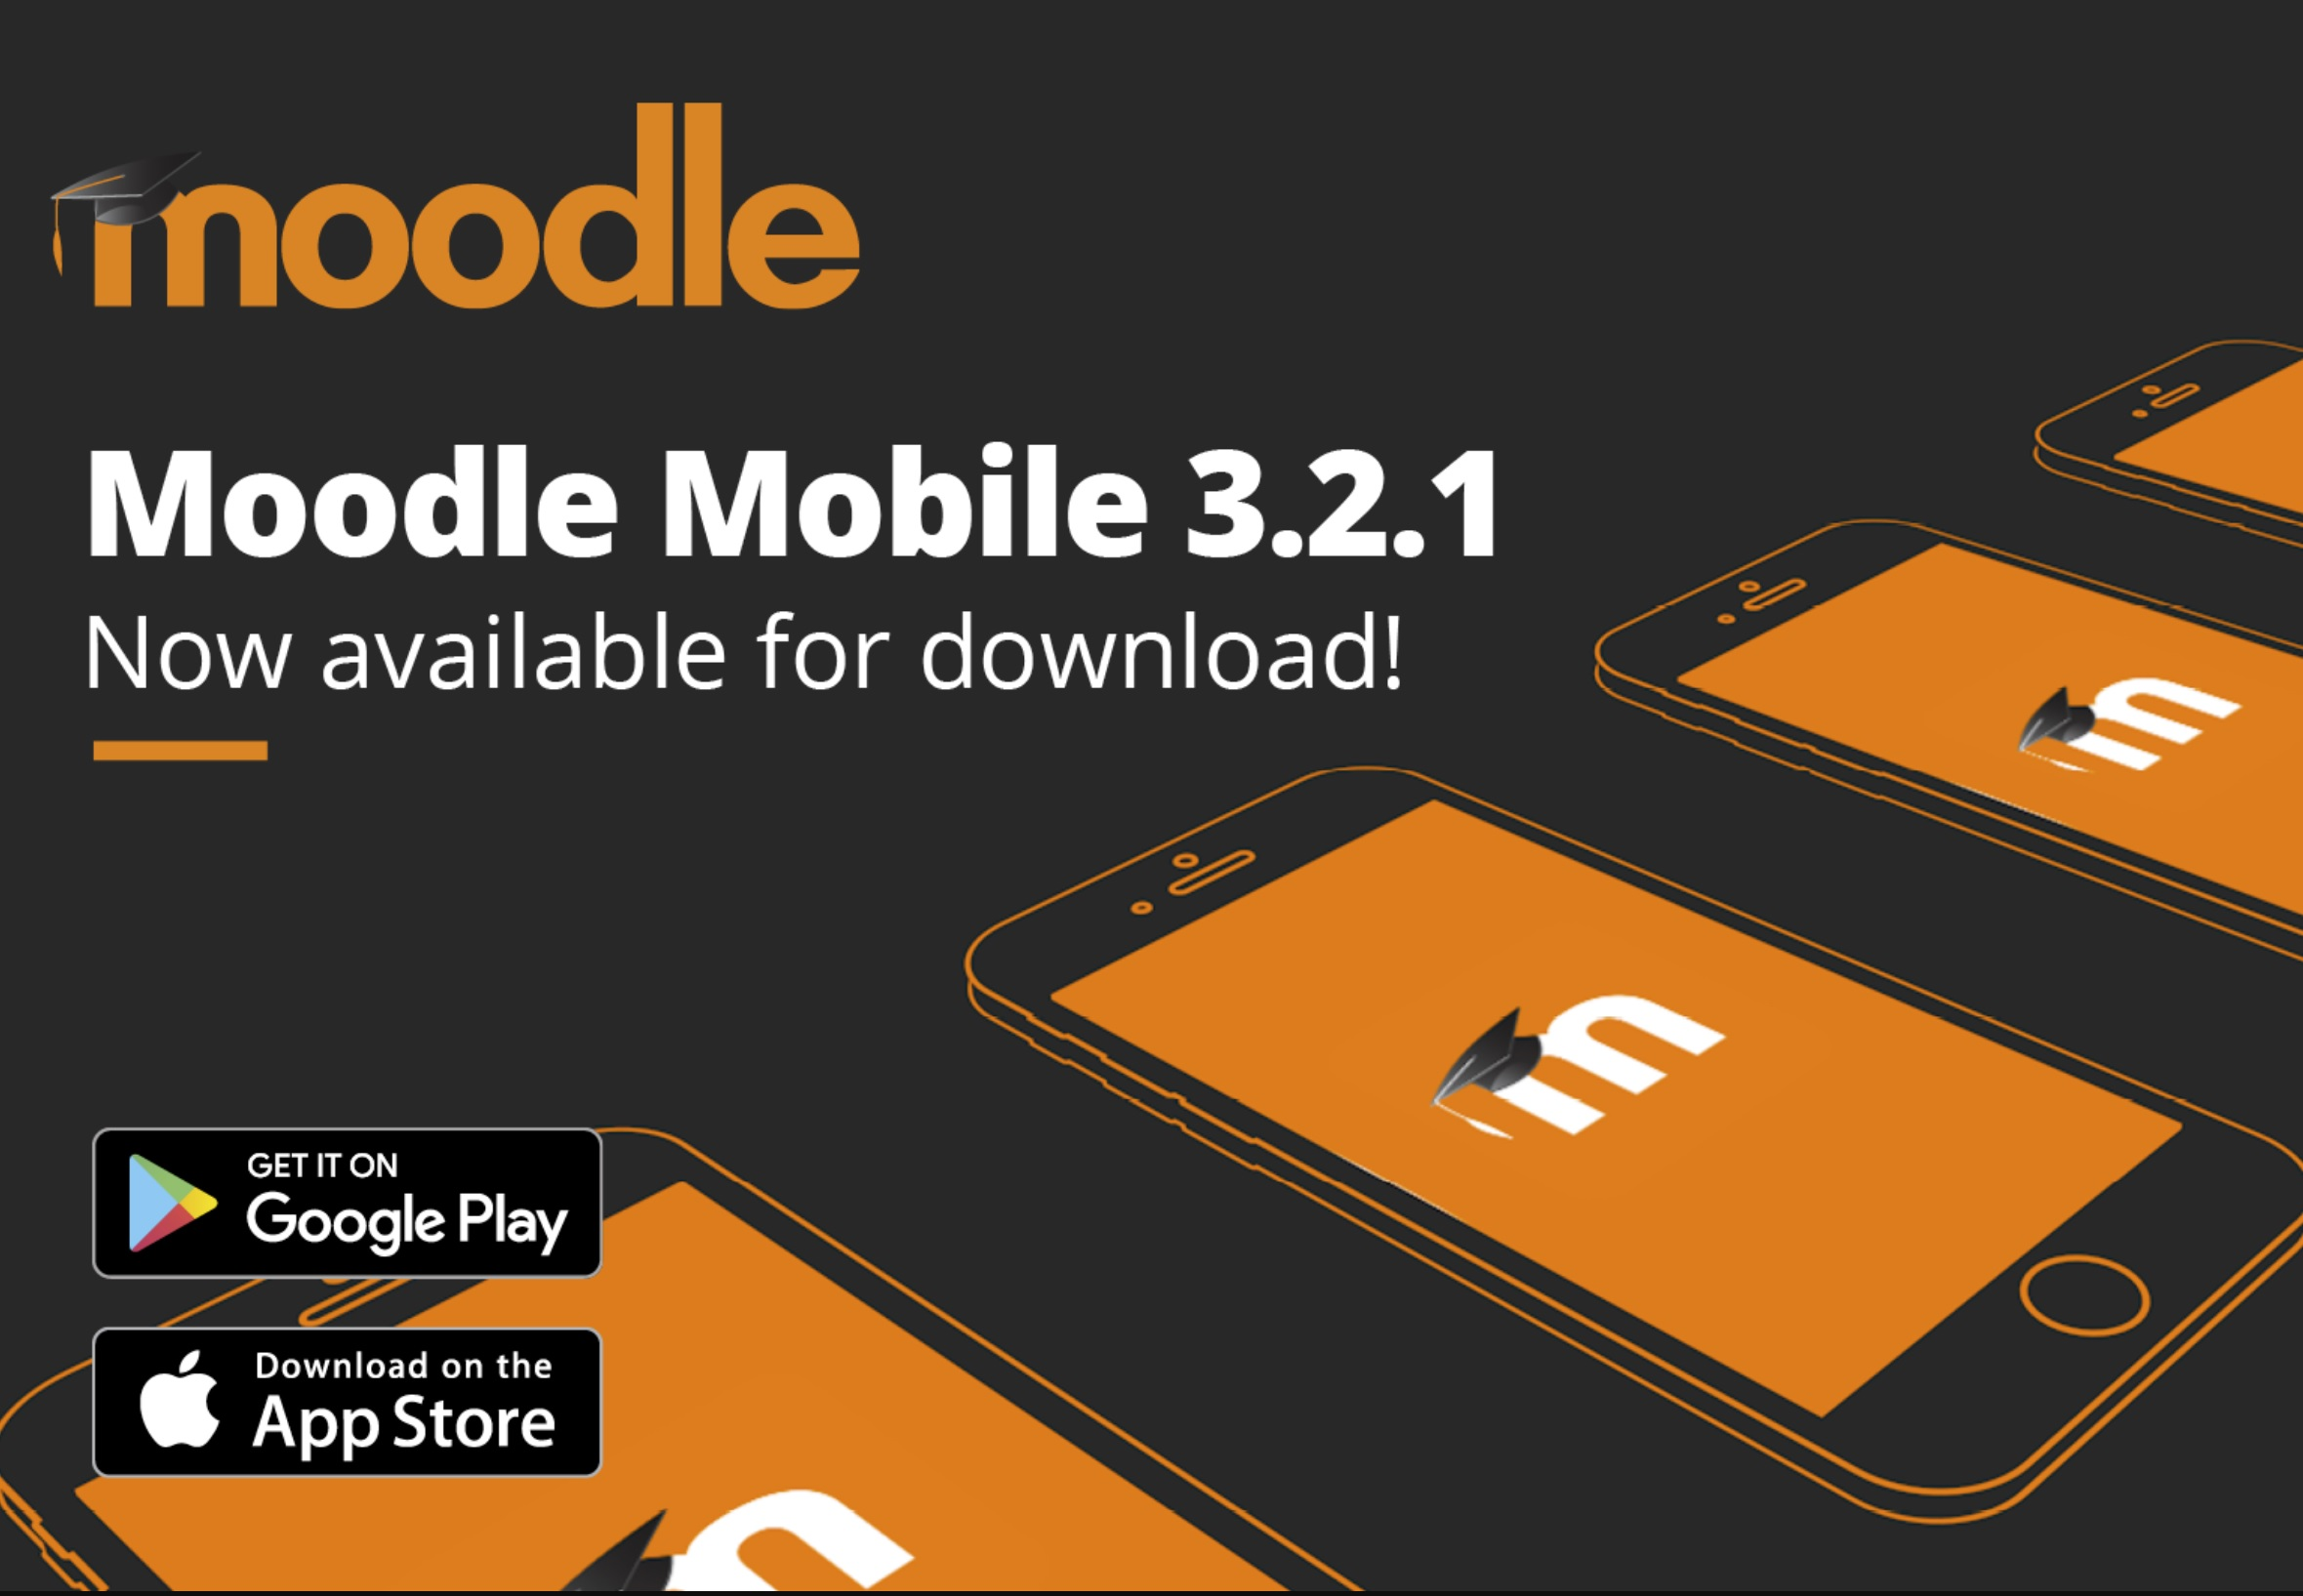 The home page of the Moodle App to click if you want to install it